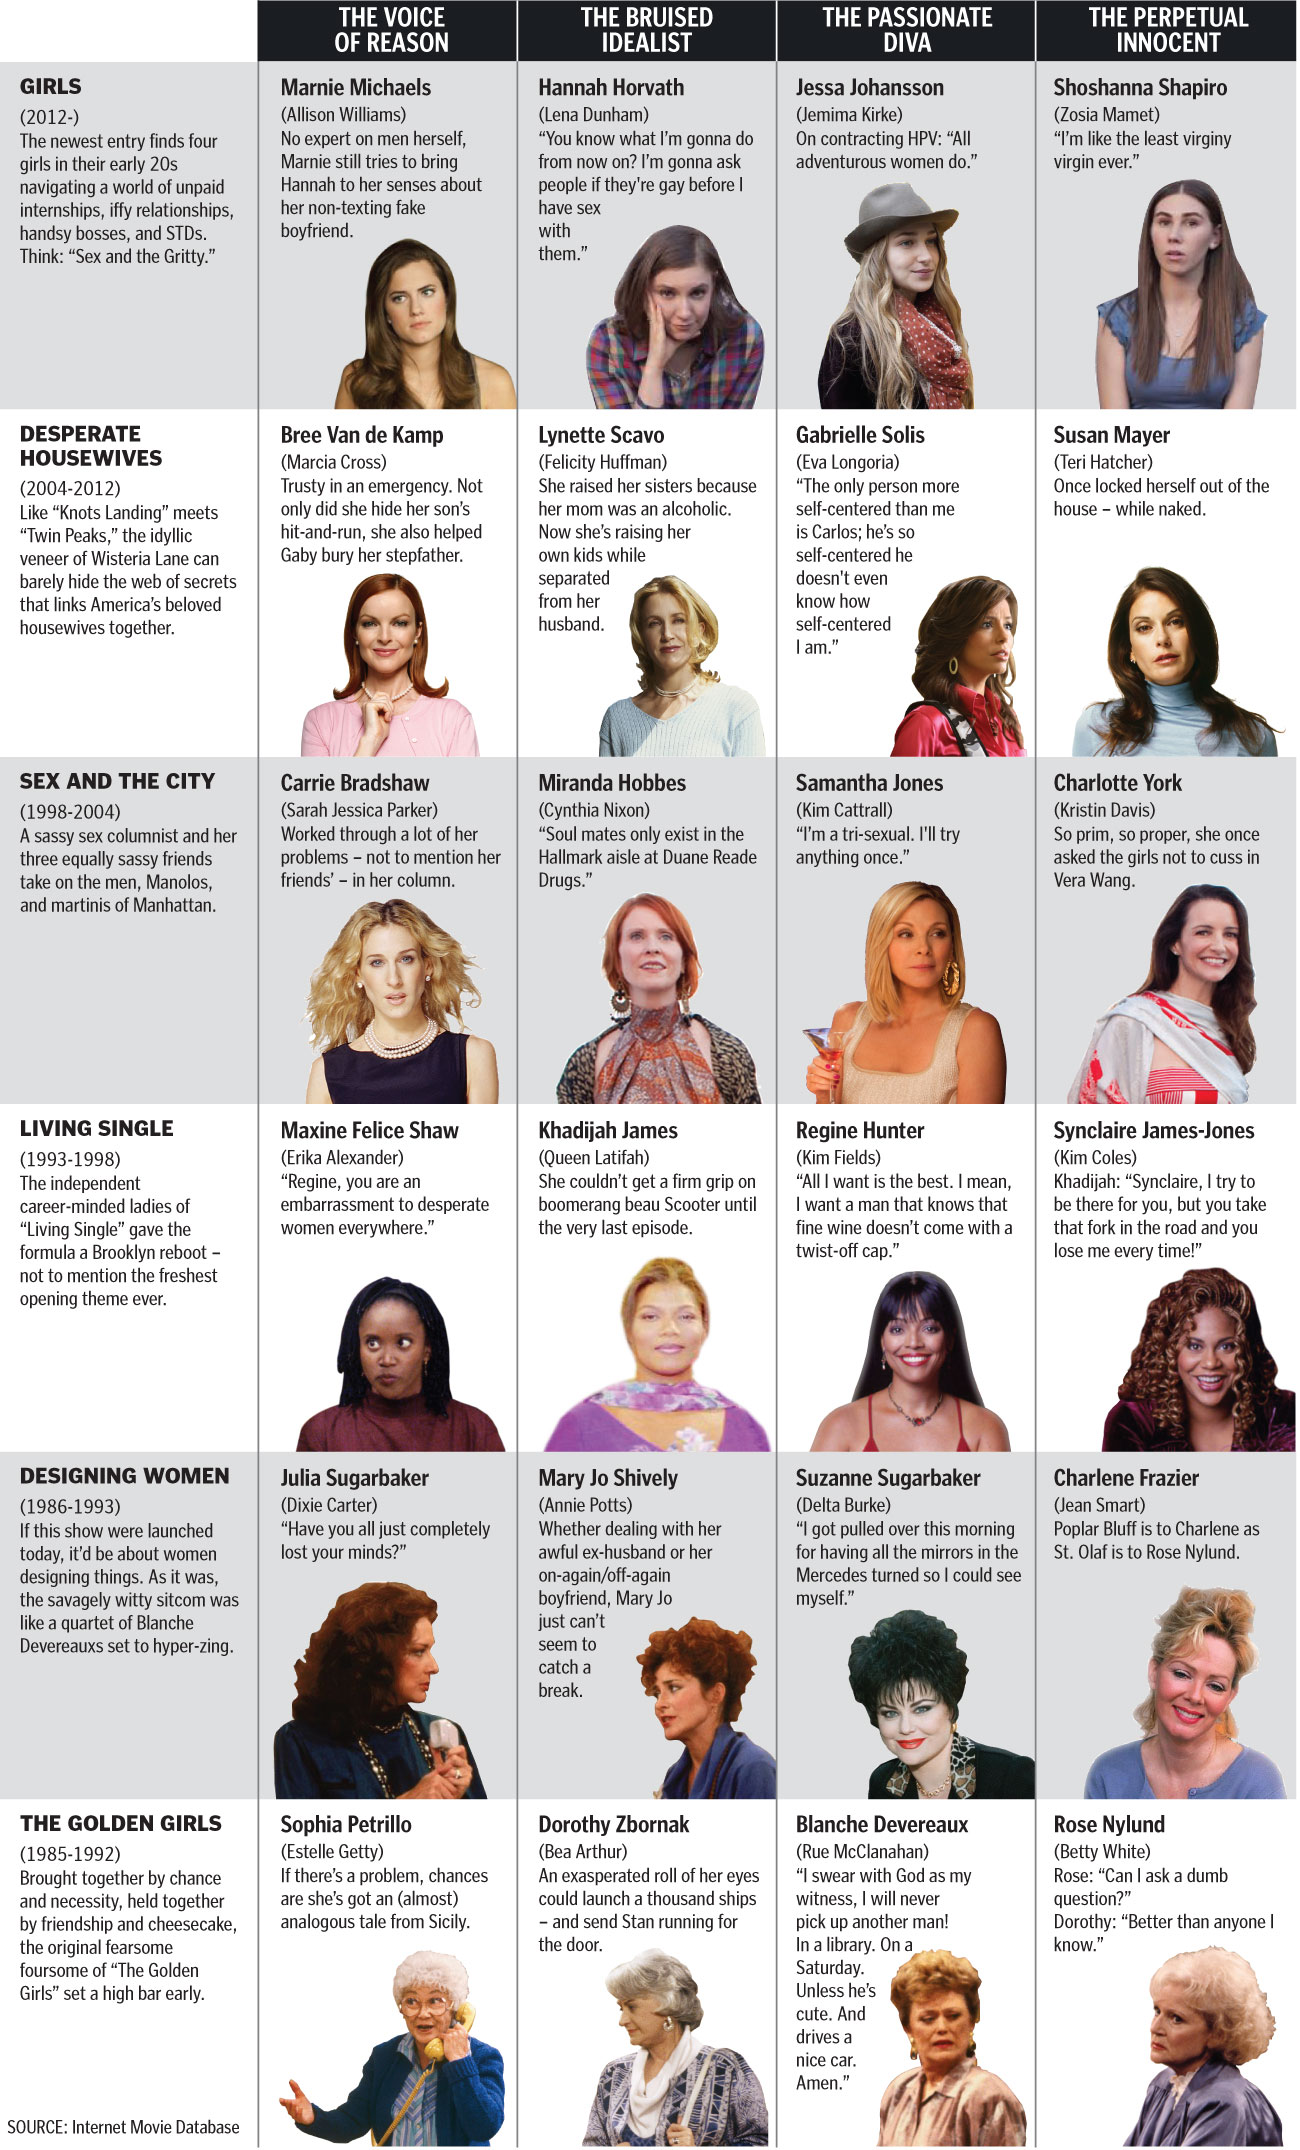 Boston Globe chart comparing Desperate Housewives, Golden Girls, Sex And The City, Hot In Cleveland, Living Single, Designing Women, Girls